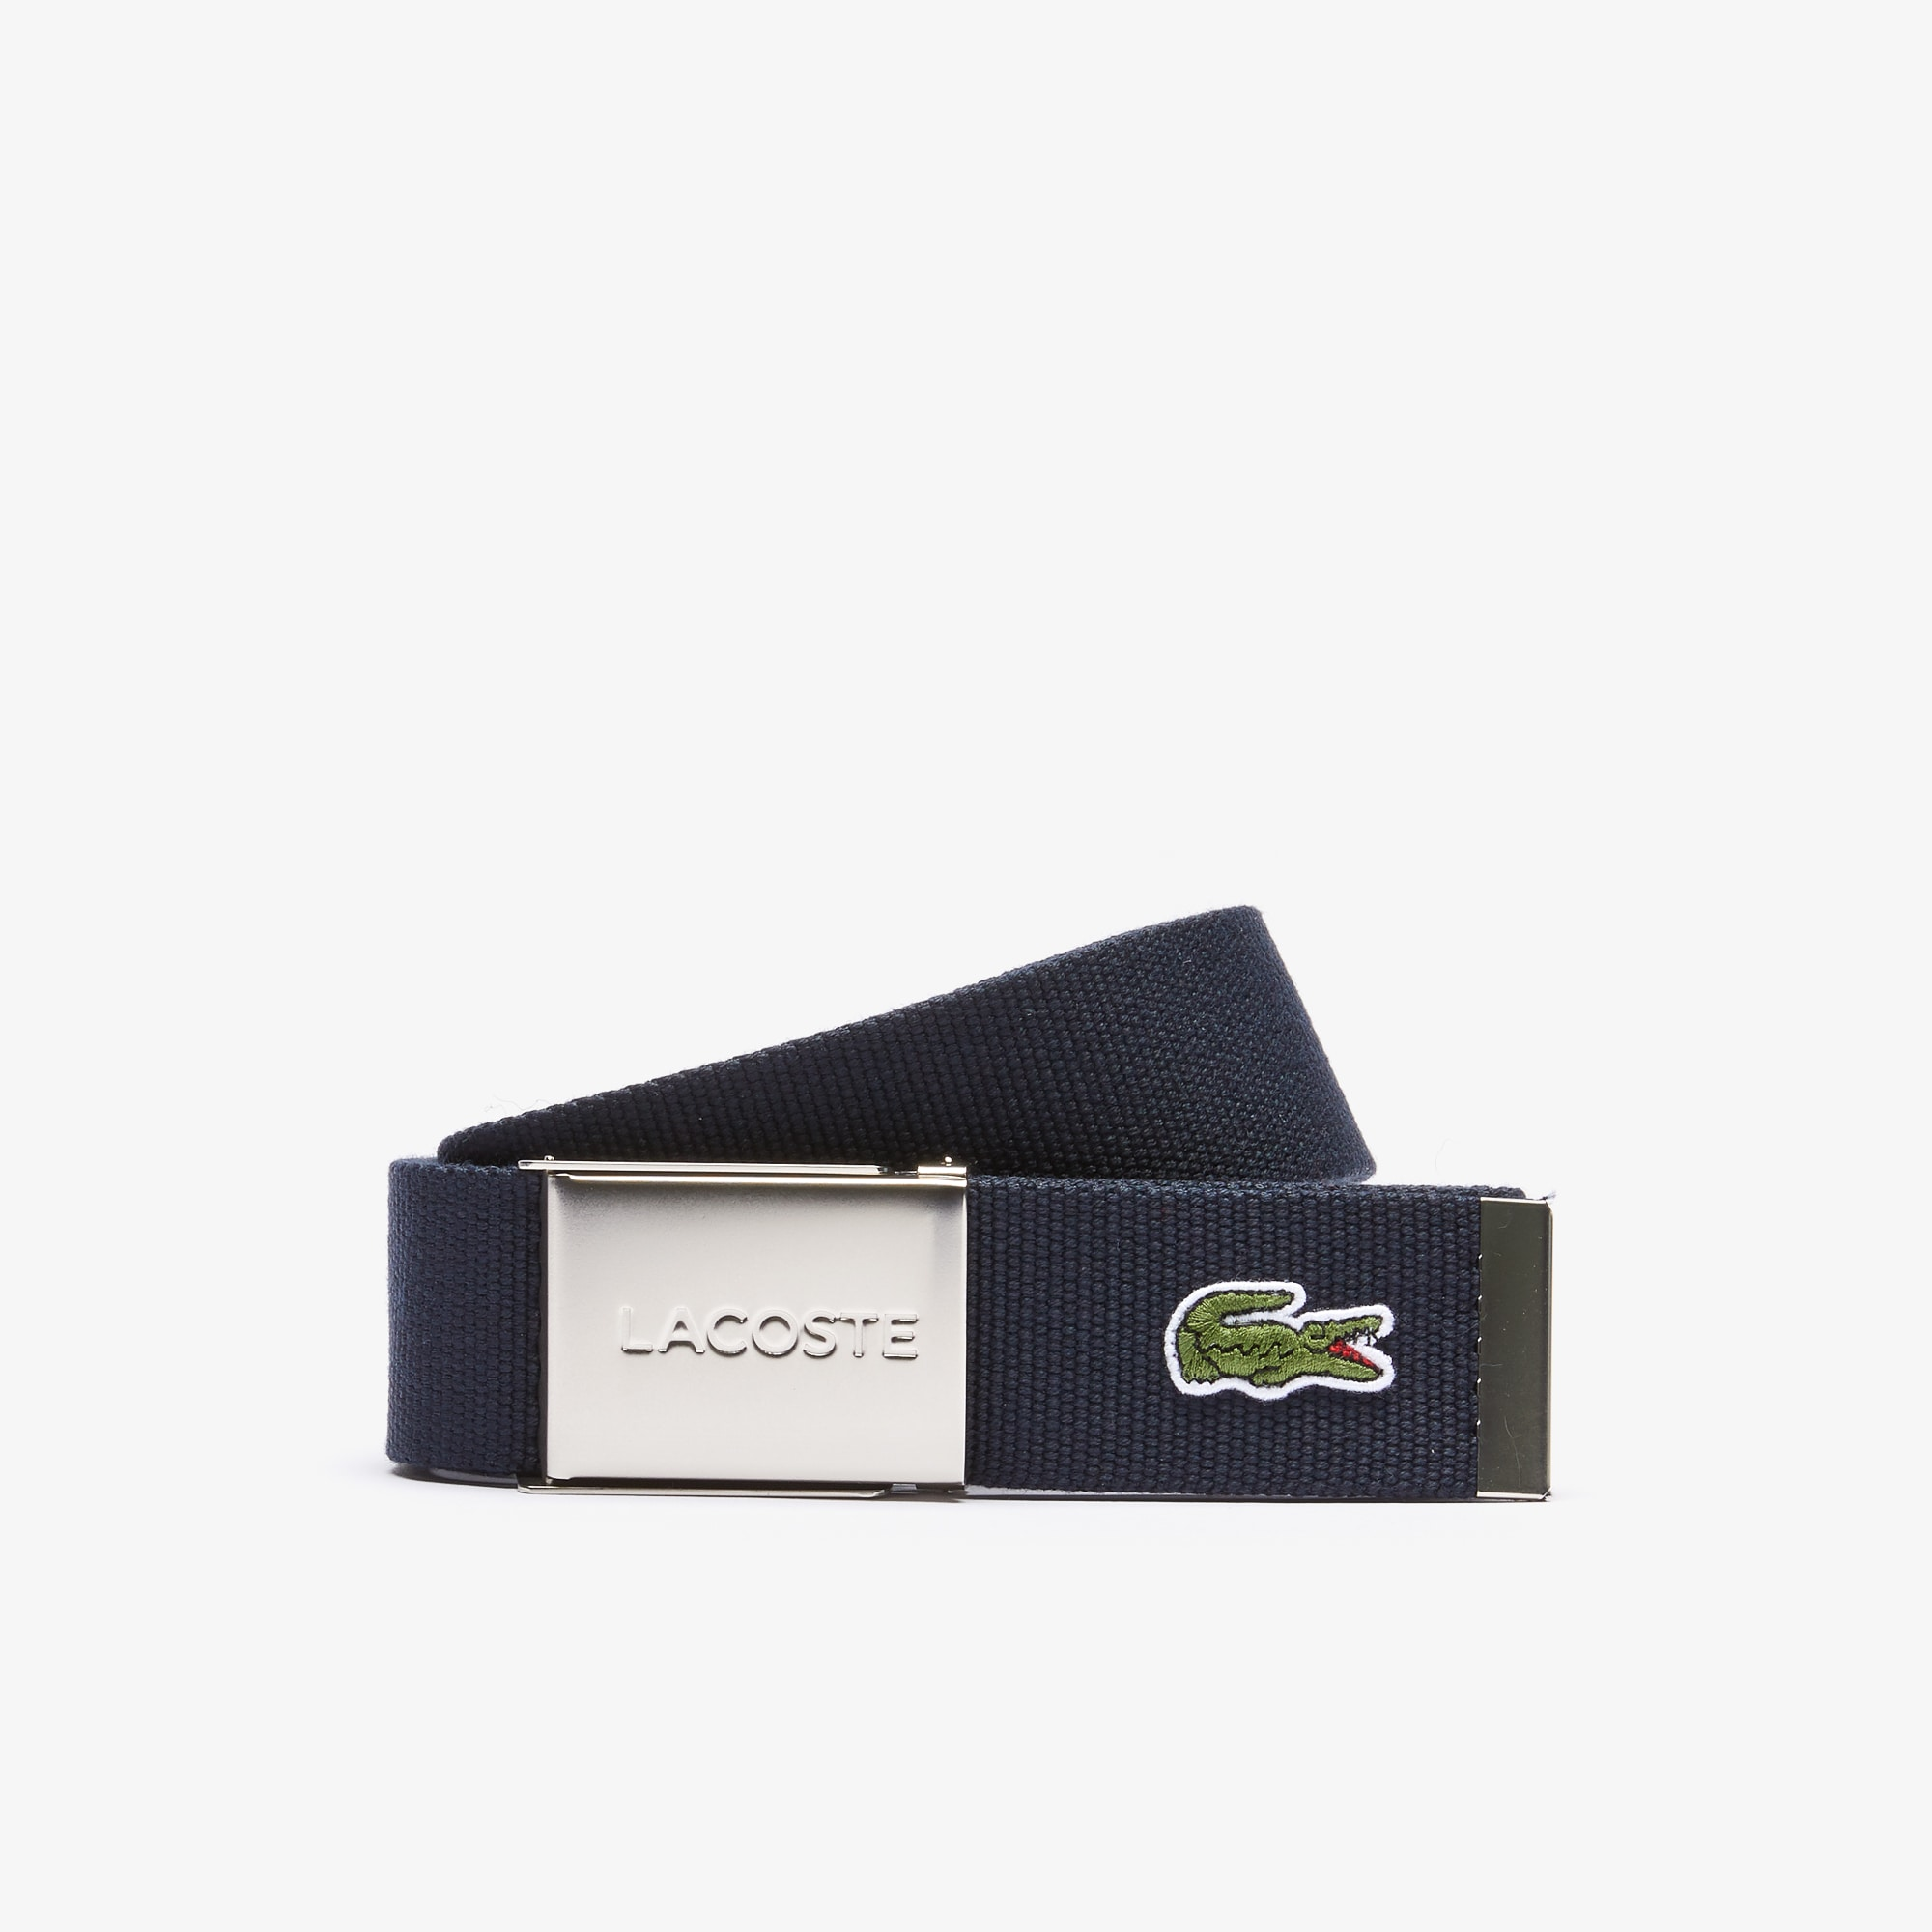 Geweven riem, Made in France-editie, platte gesp met Lacoste-gravering